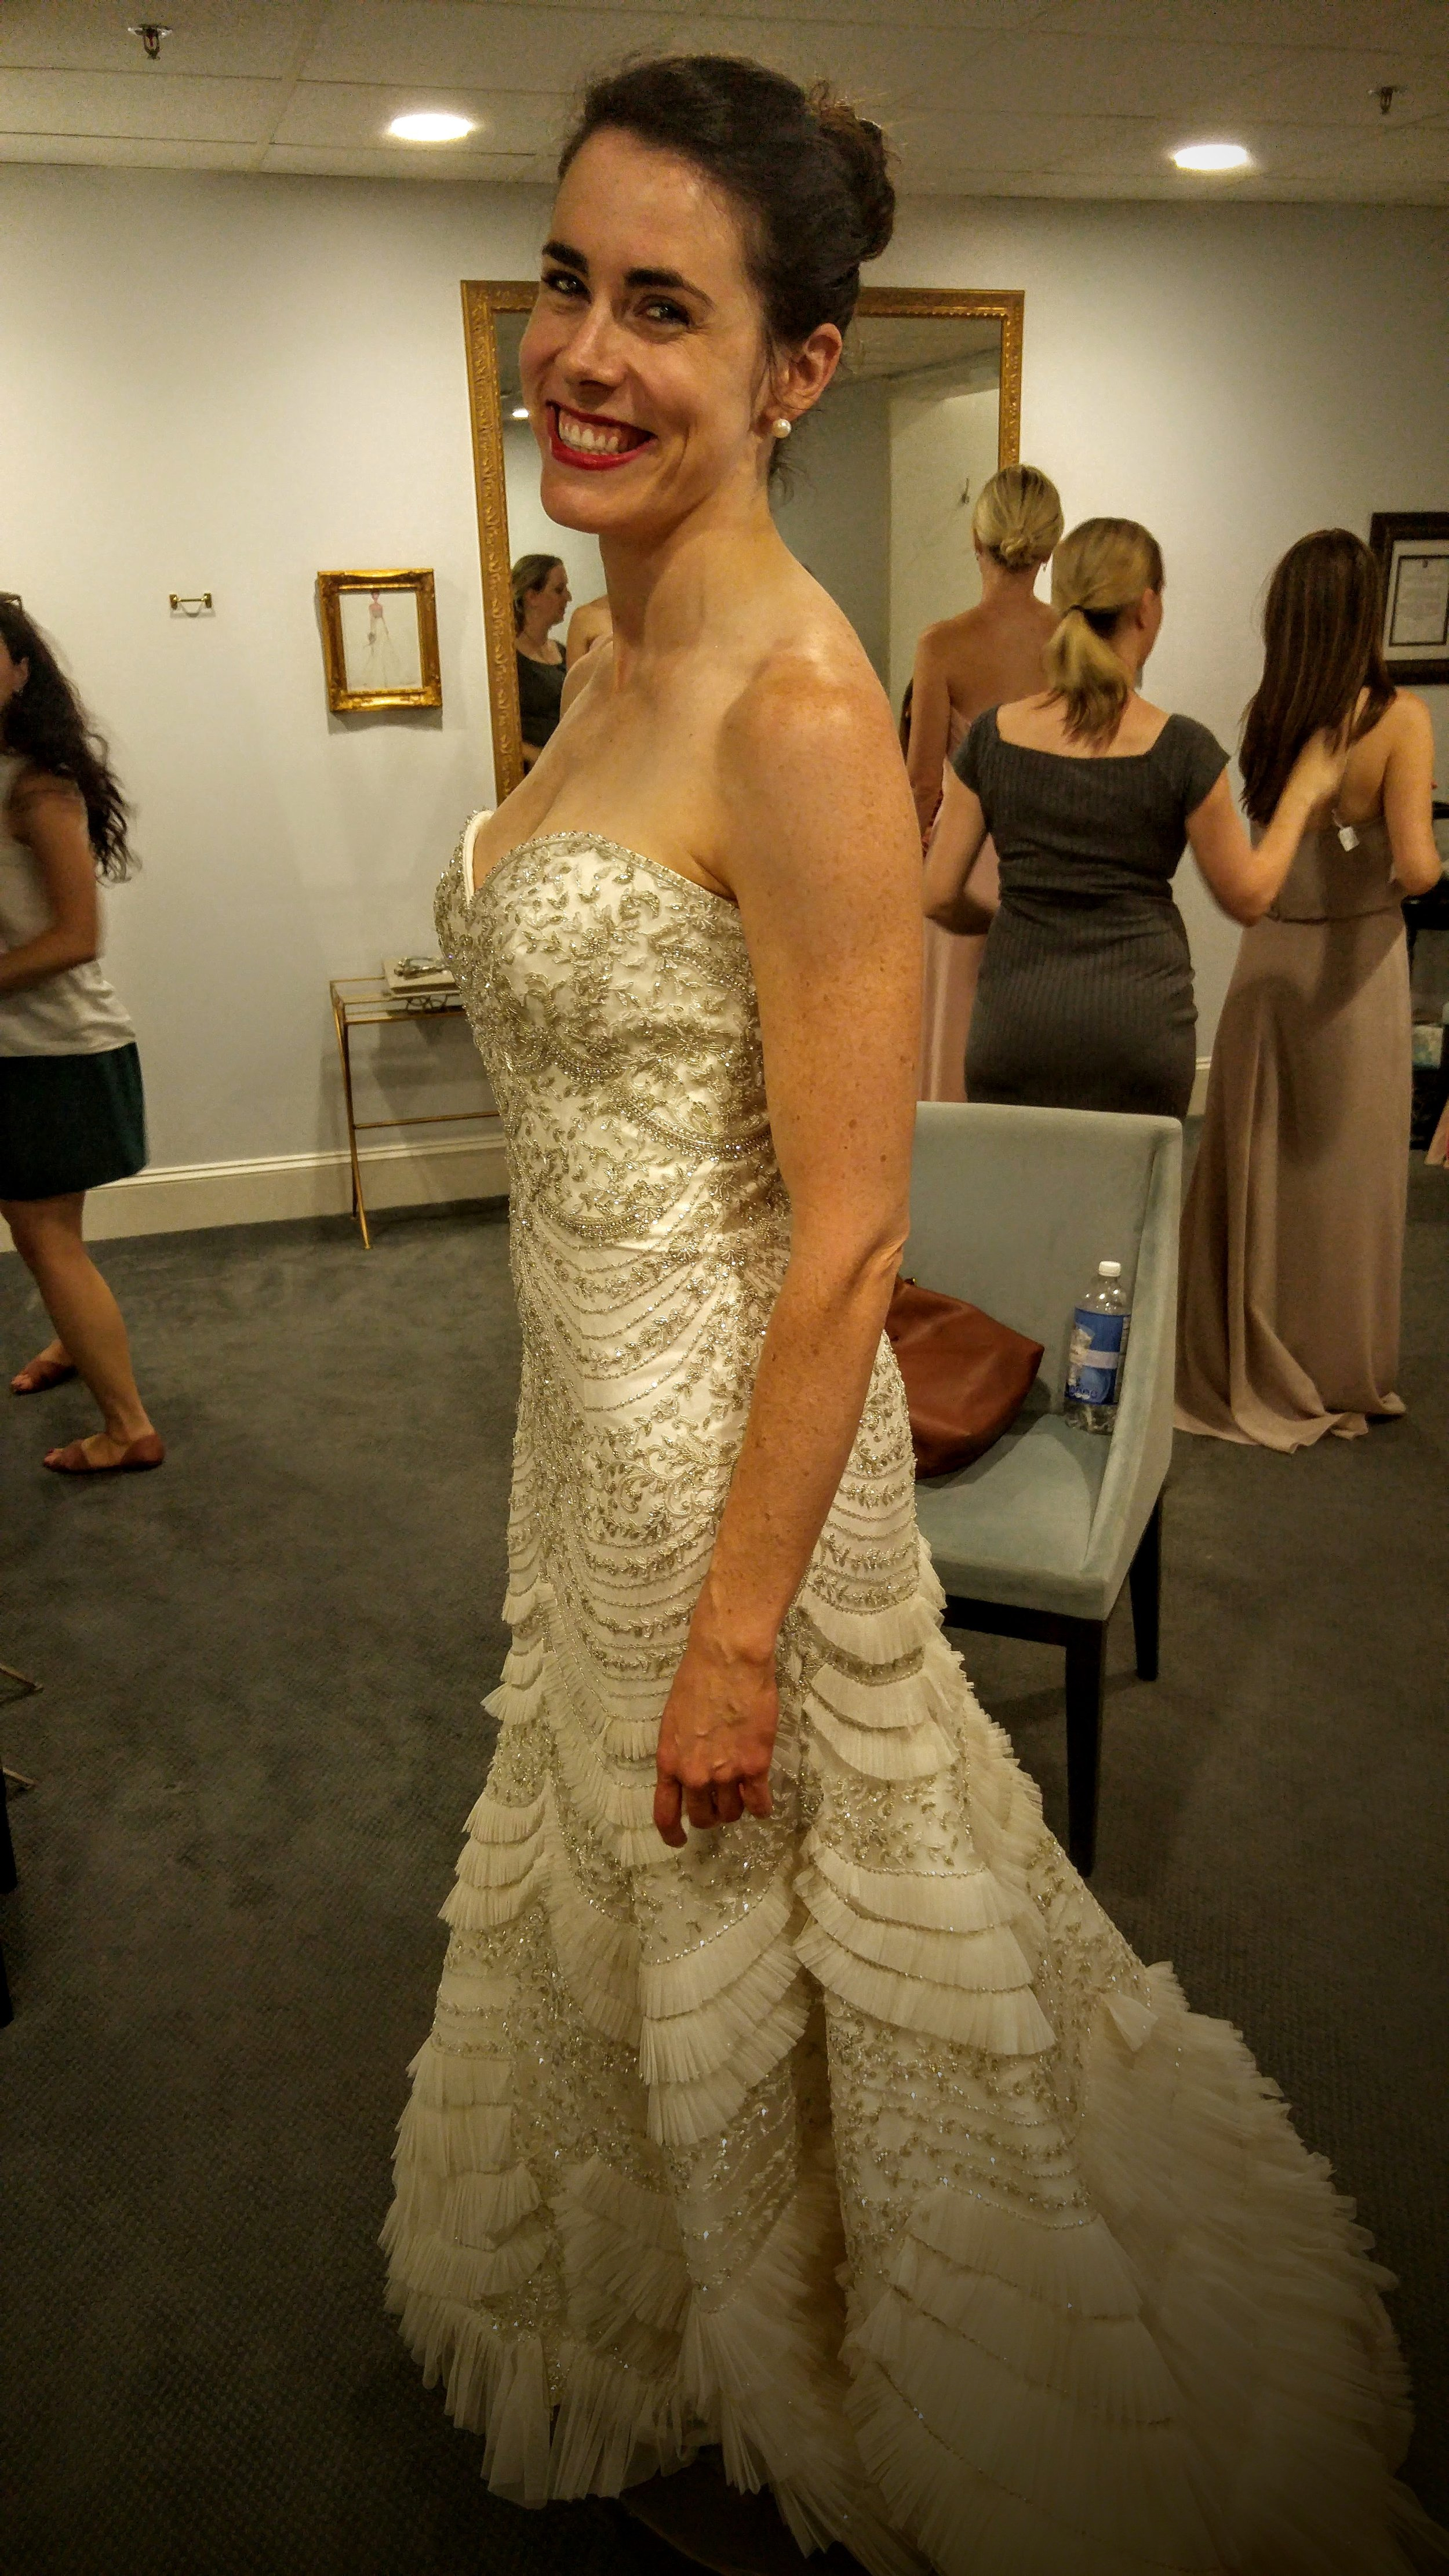 First problem: it's strapless, and would look weird with straps sown onto it. Second problem: it looks like an evening gown, not a wedding gown. Third problem: it was $5,000.